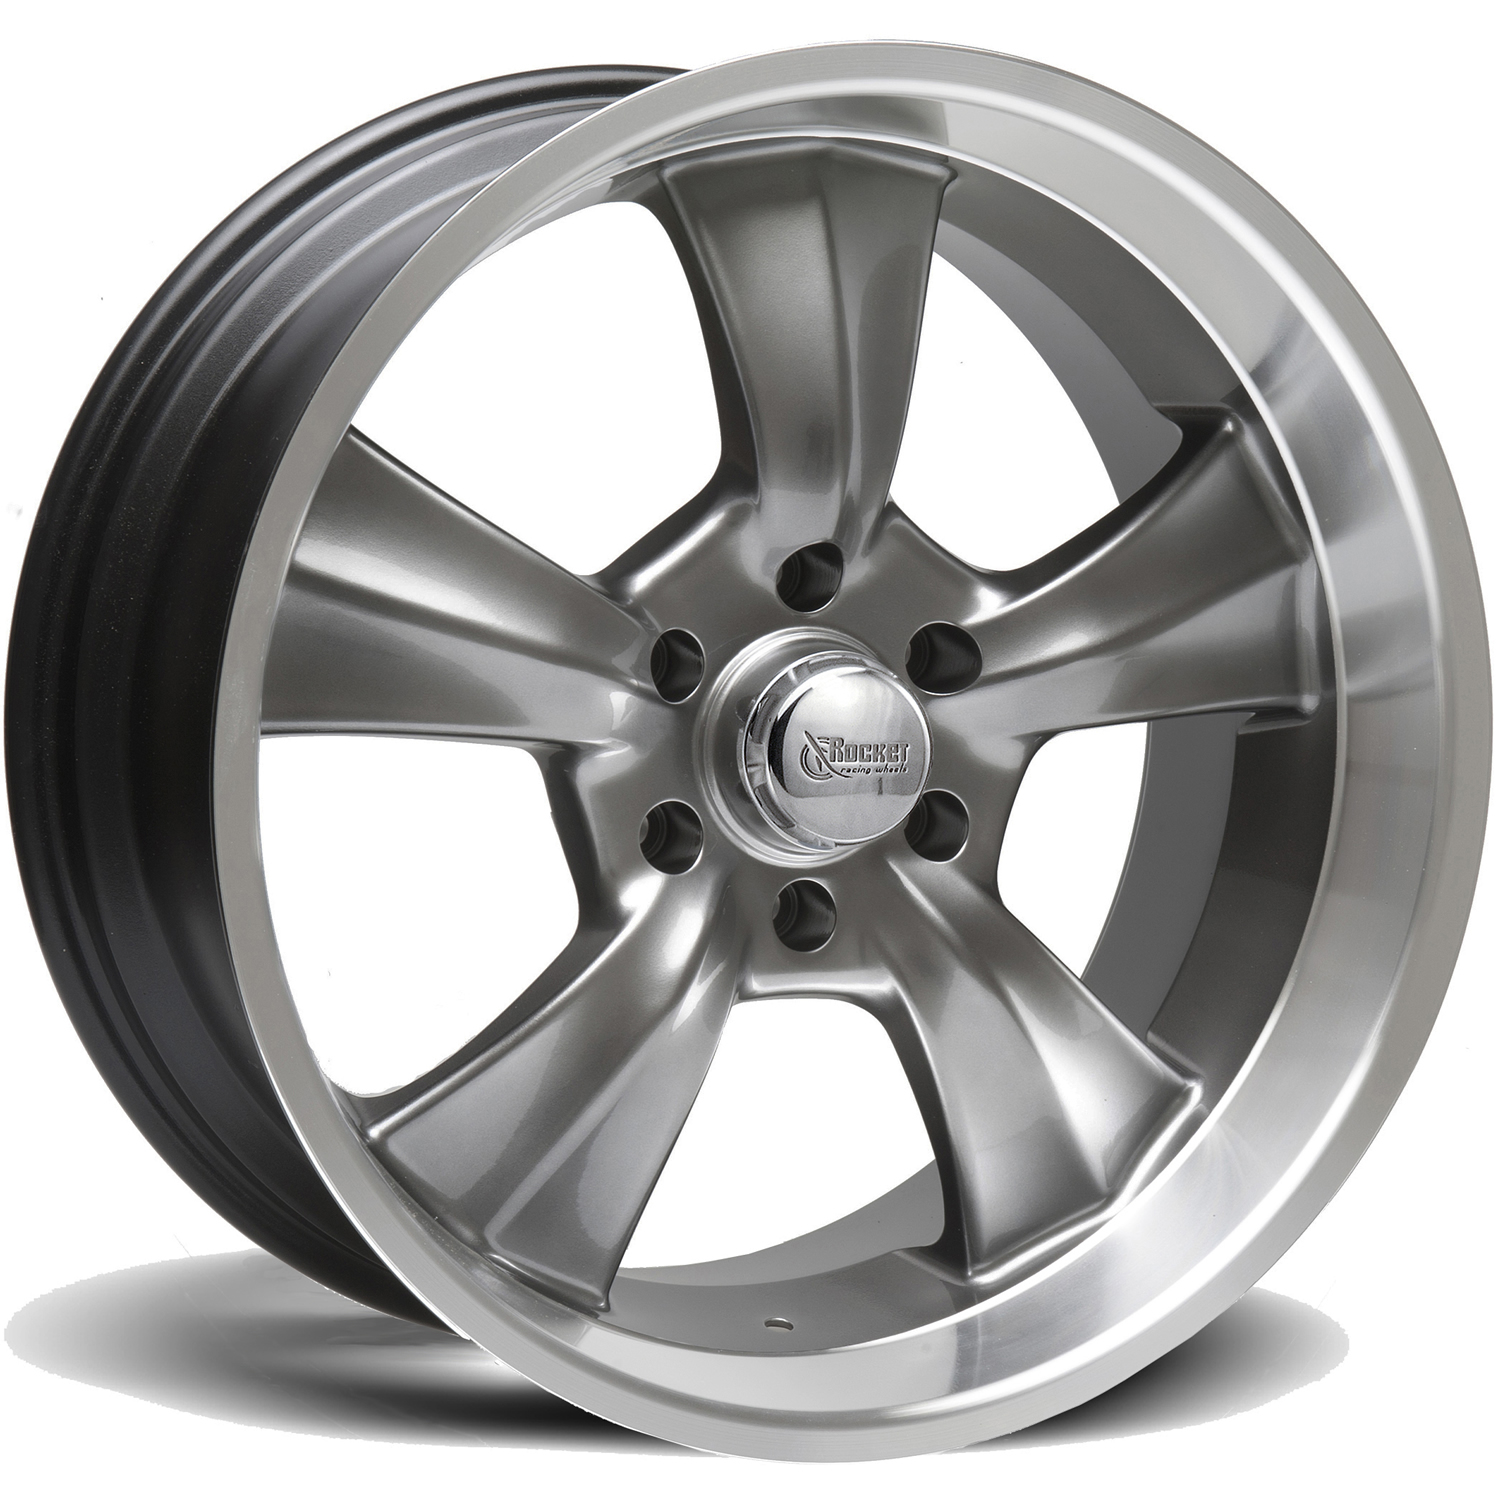 Wheel And Tire Package Deals >> Rocket Racing Booster 6 20x9 0mm | LTR16-2953500 | Custom Offsets